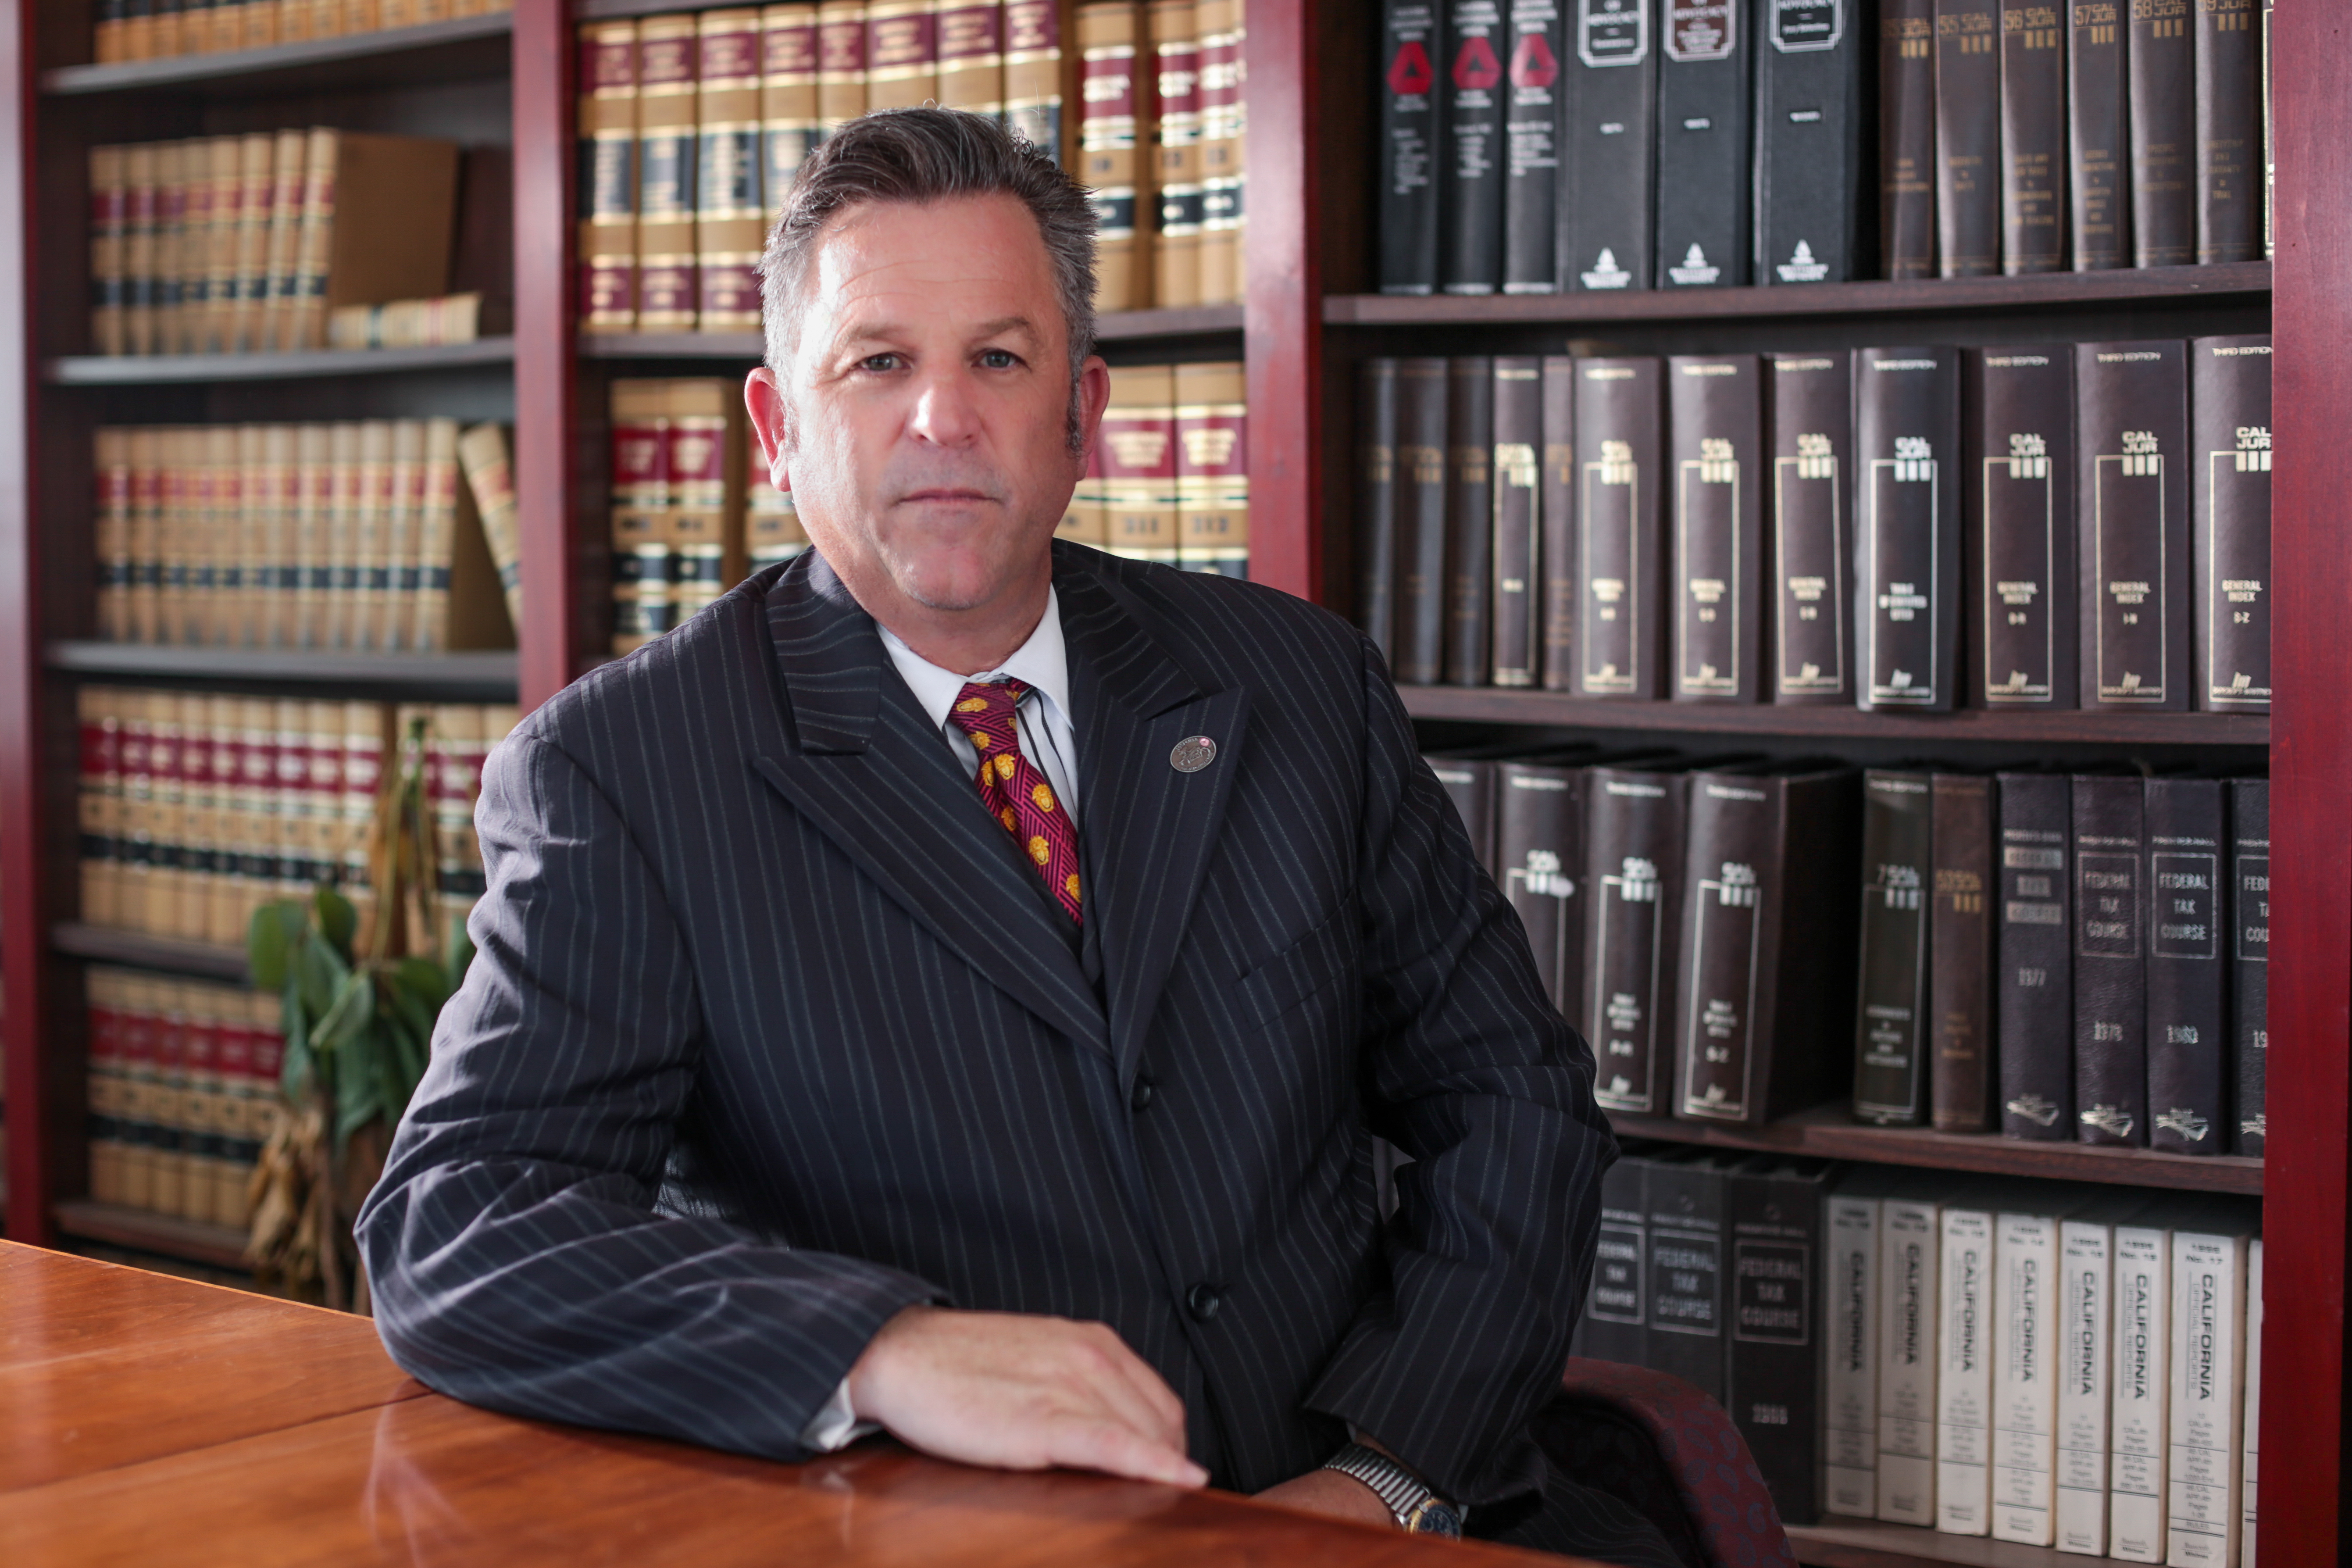 Charles Magill, Fresno Criminal Defense Lawyer